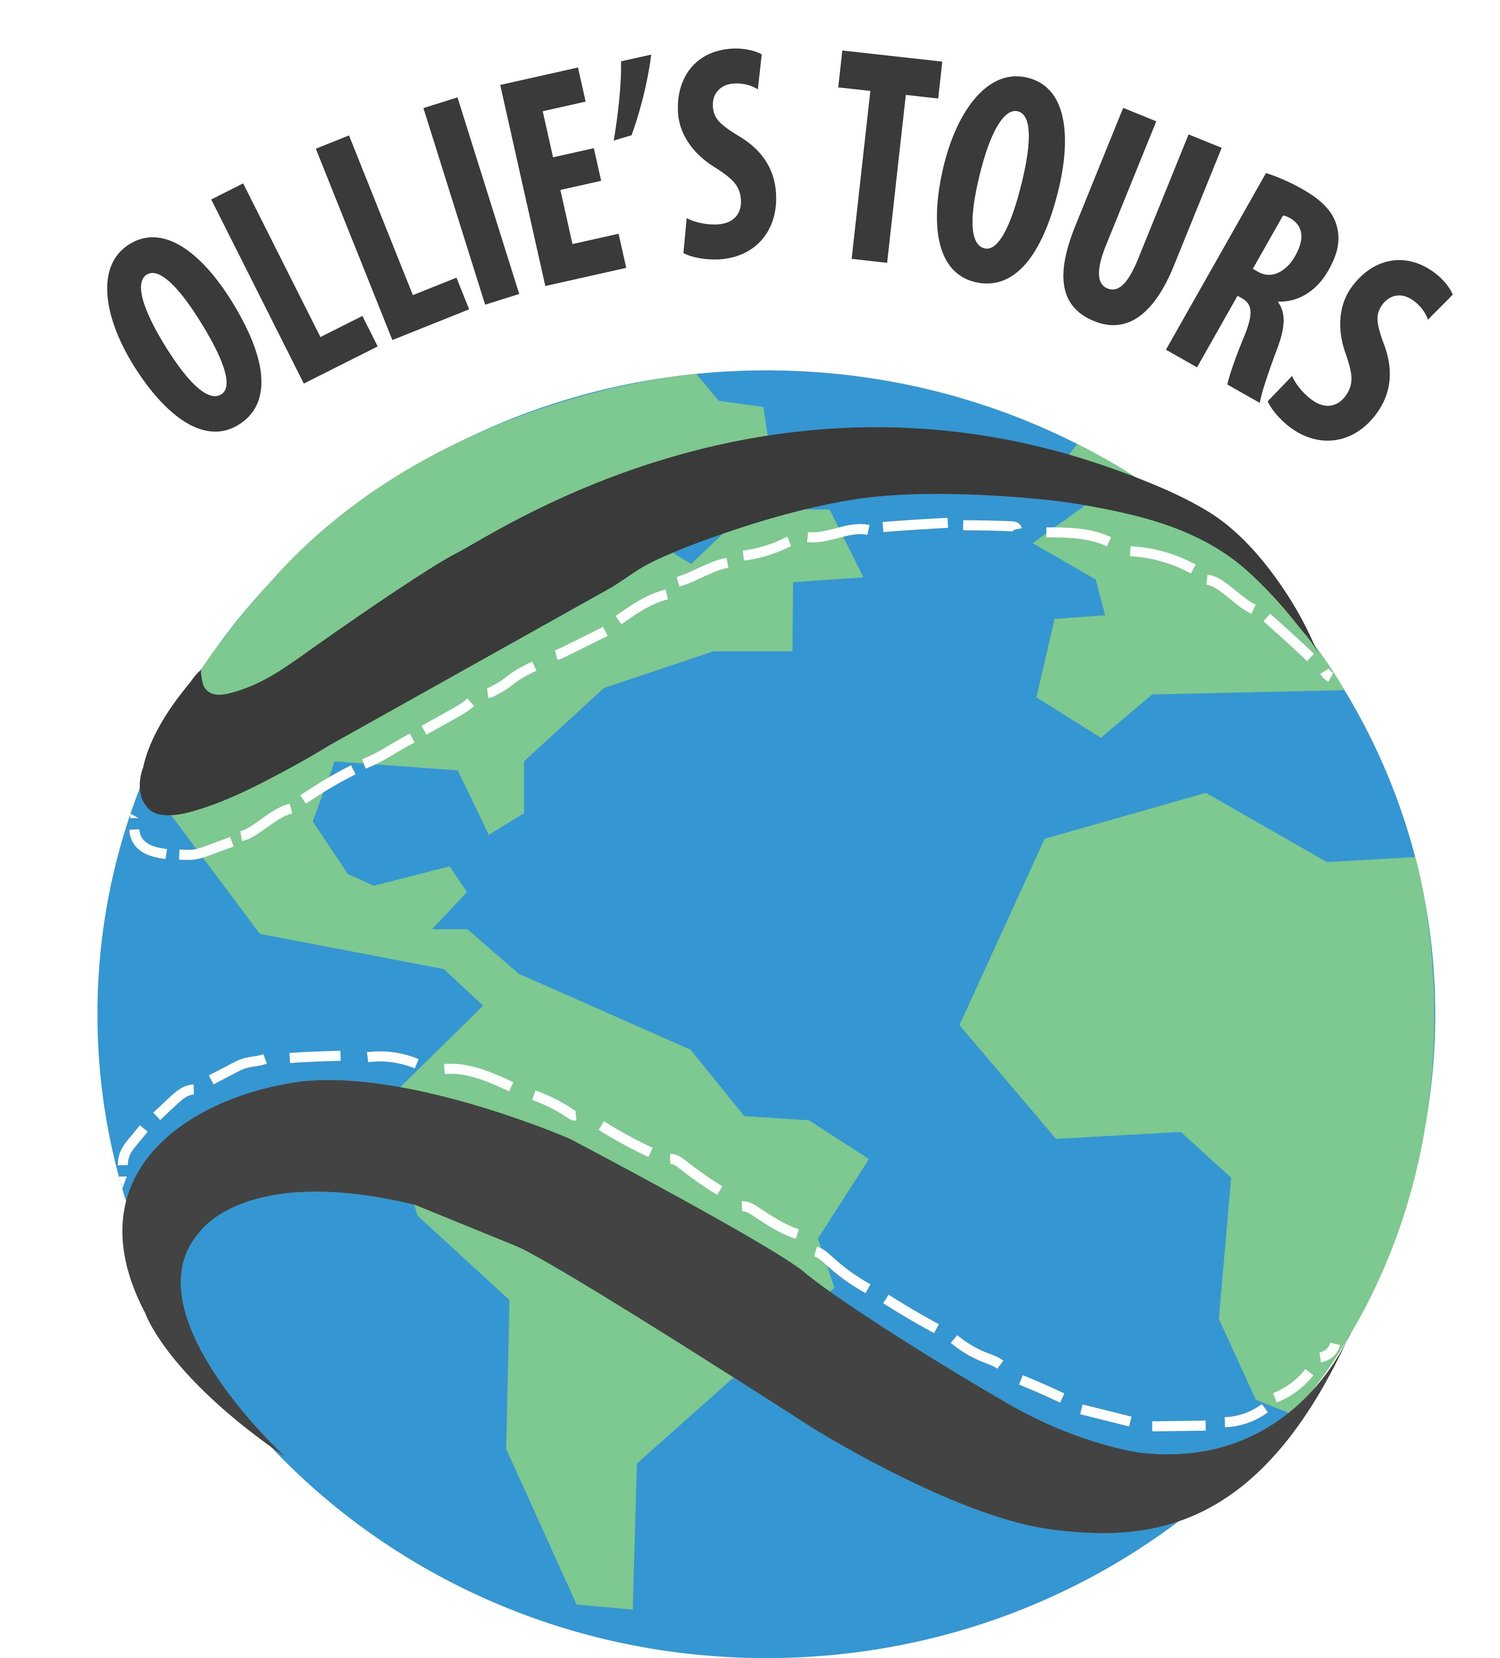 Ollie's Tours | #1 Walking Tours of Ennis | Group Tours | Private Tours | Daily Tours